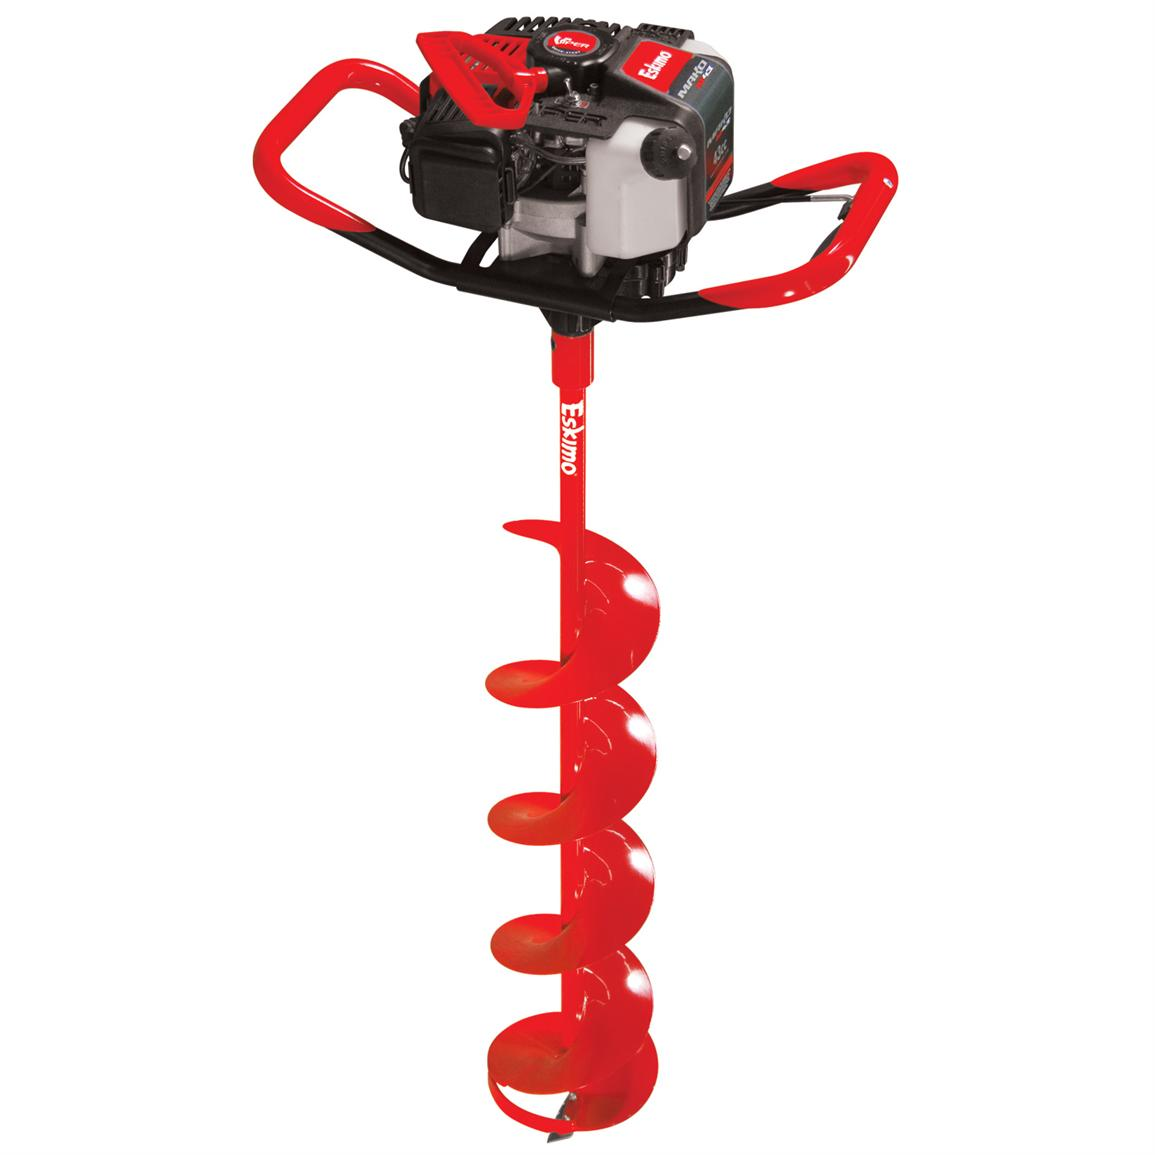 Eskimo mako quantum ice auger 191273 ice augers at for Ice fishing augers